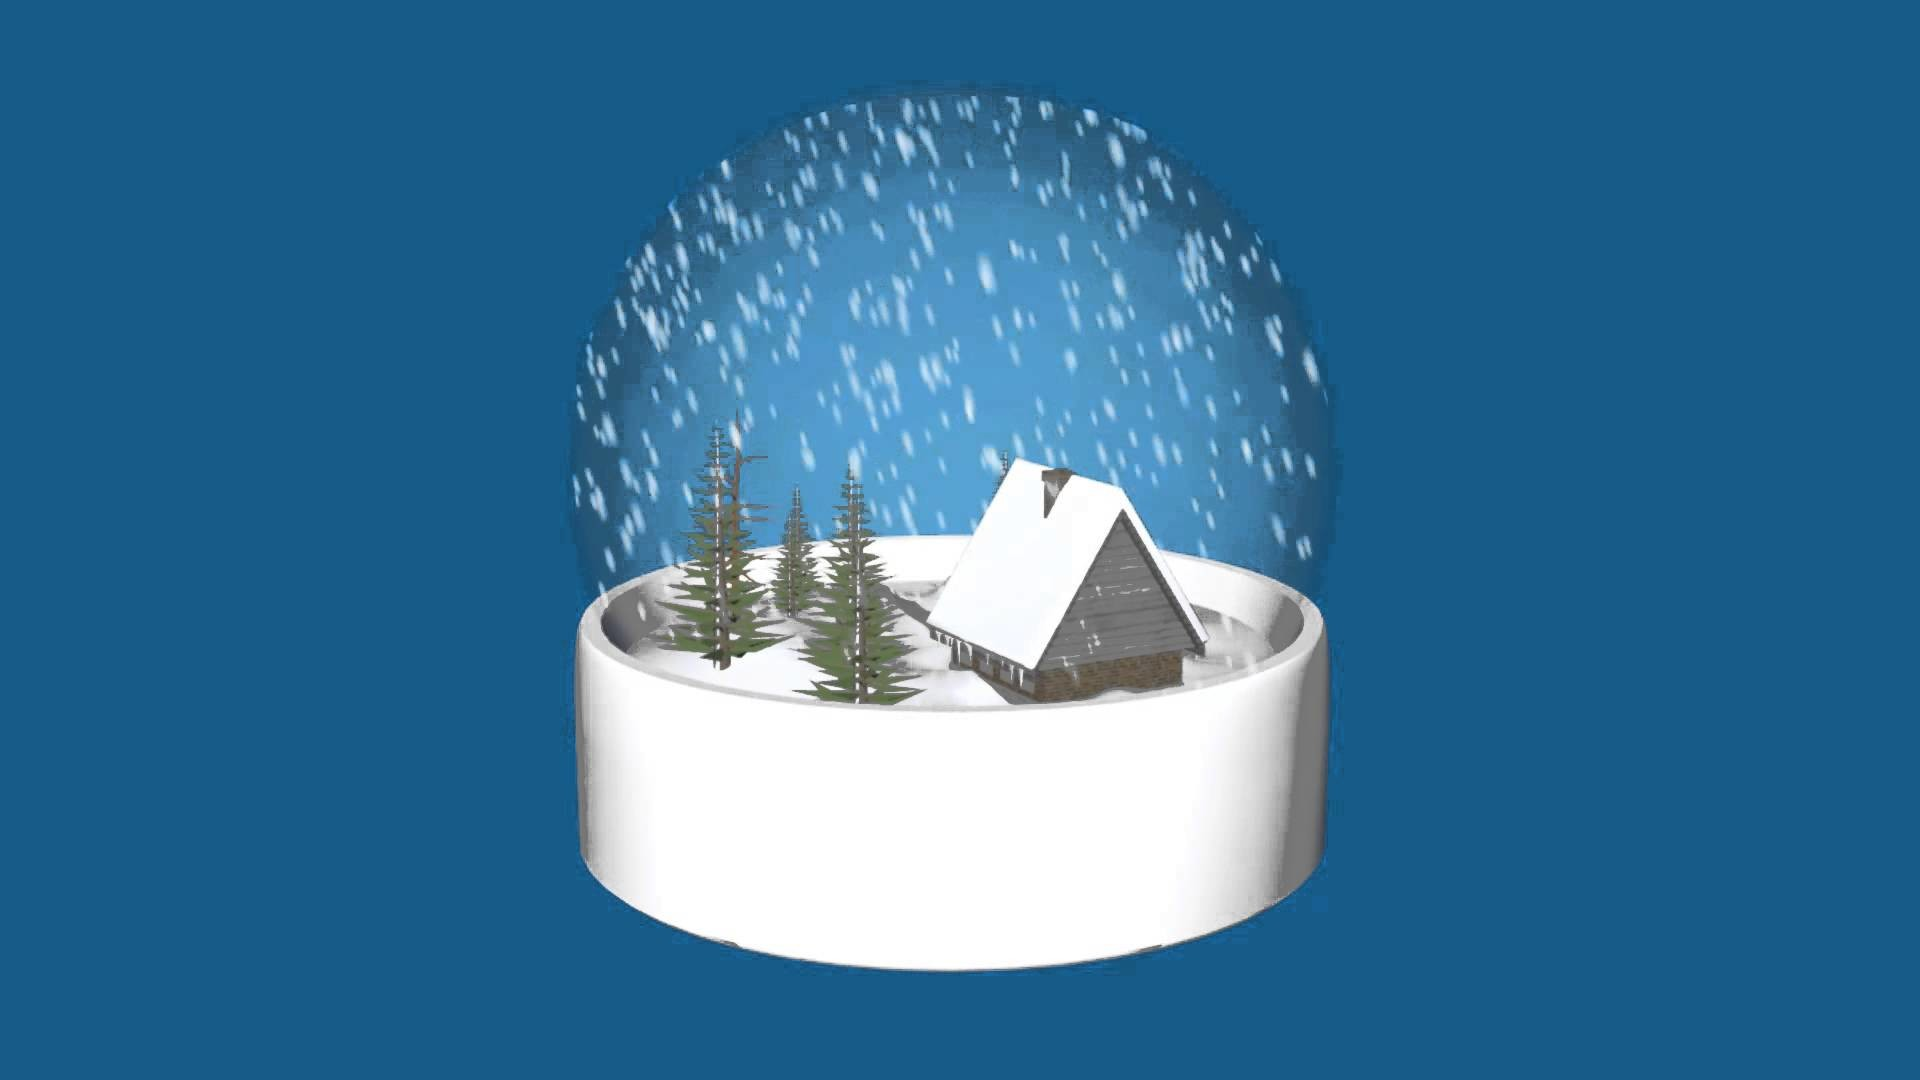 Animated Falling Snow Wallpaper Falling Snow Animated Wallpaper 57 Images